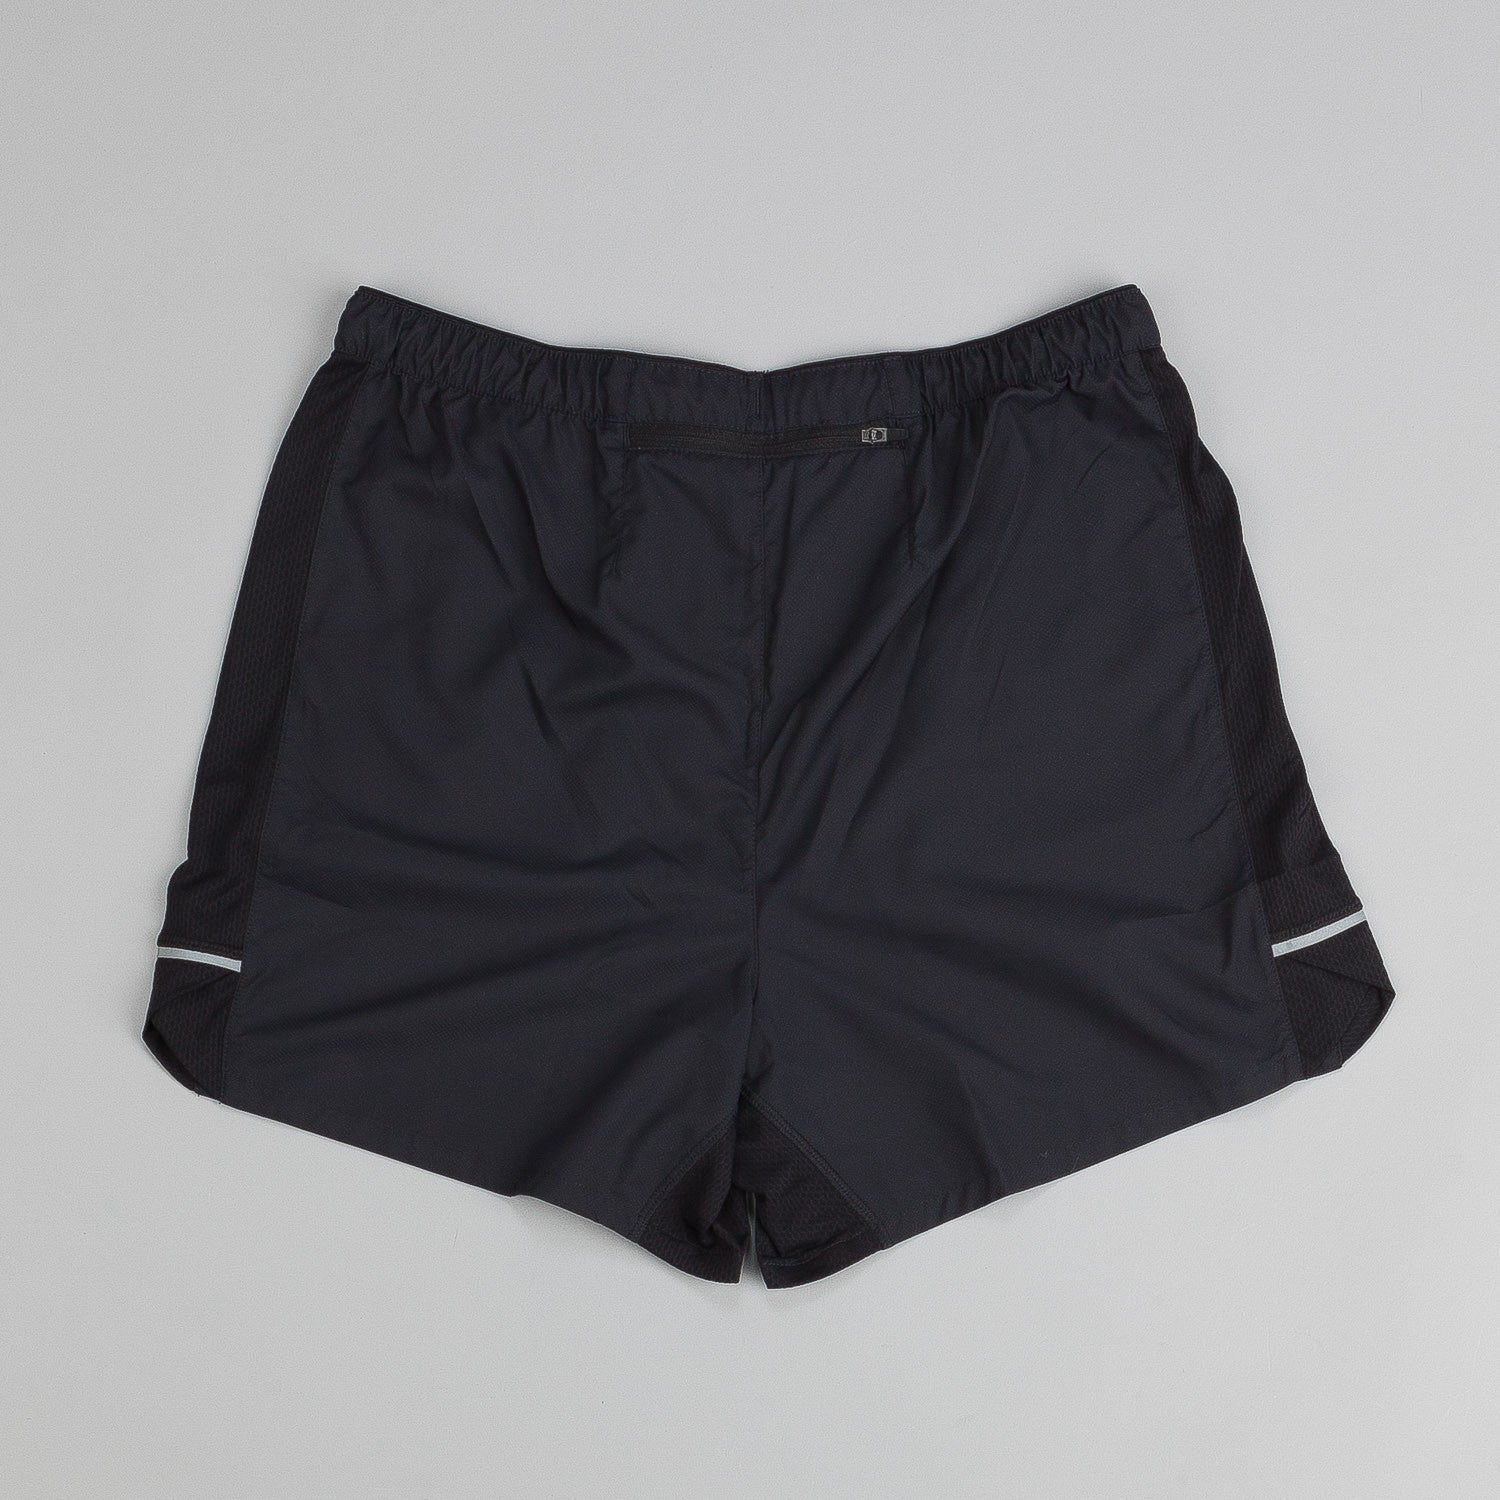 Patagonia Trail Chaser Shorts - Black